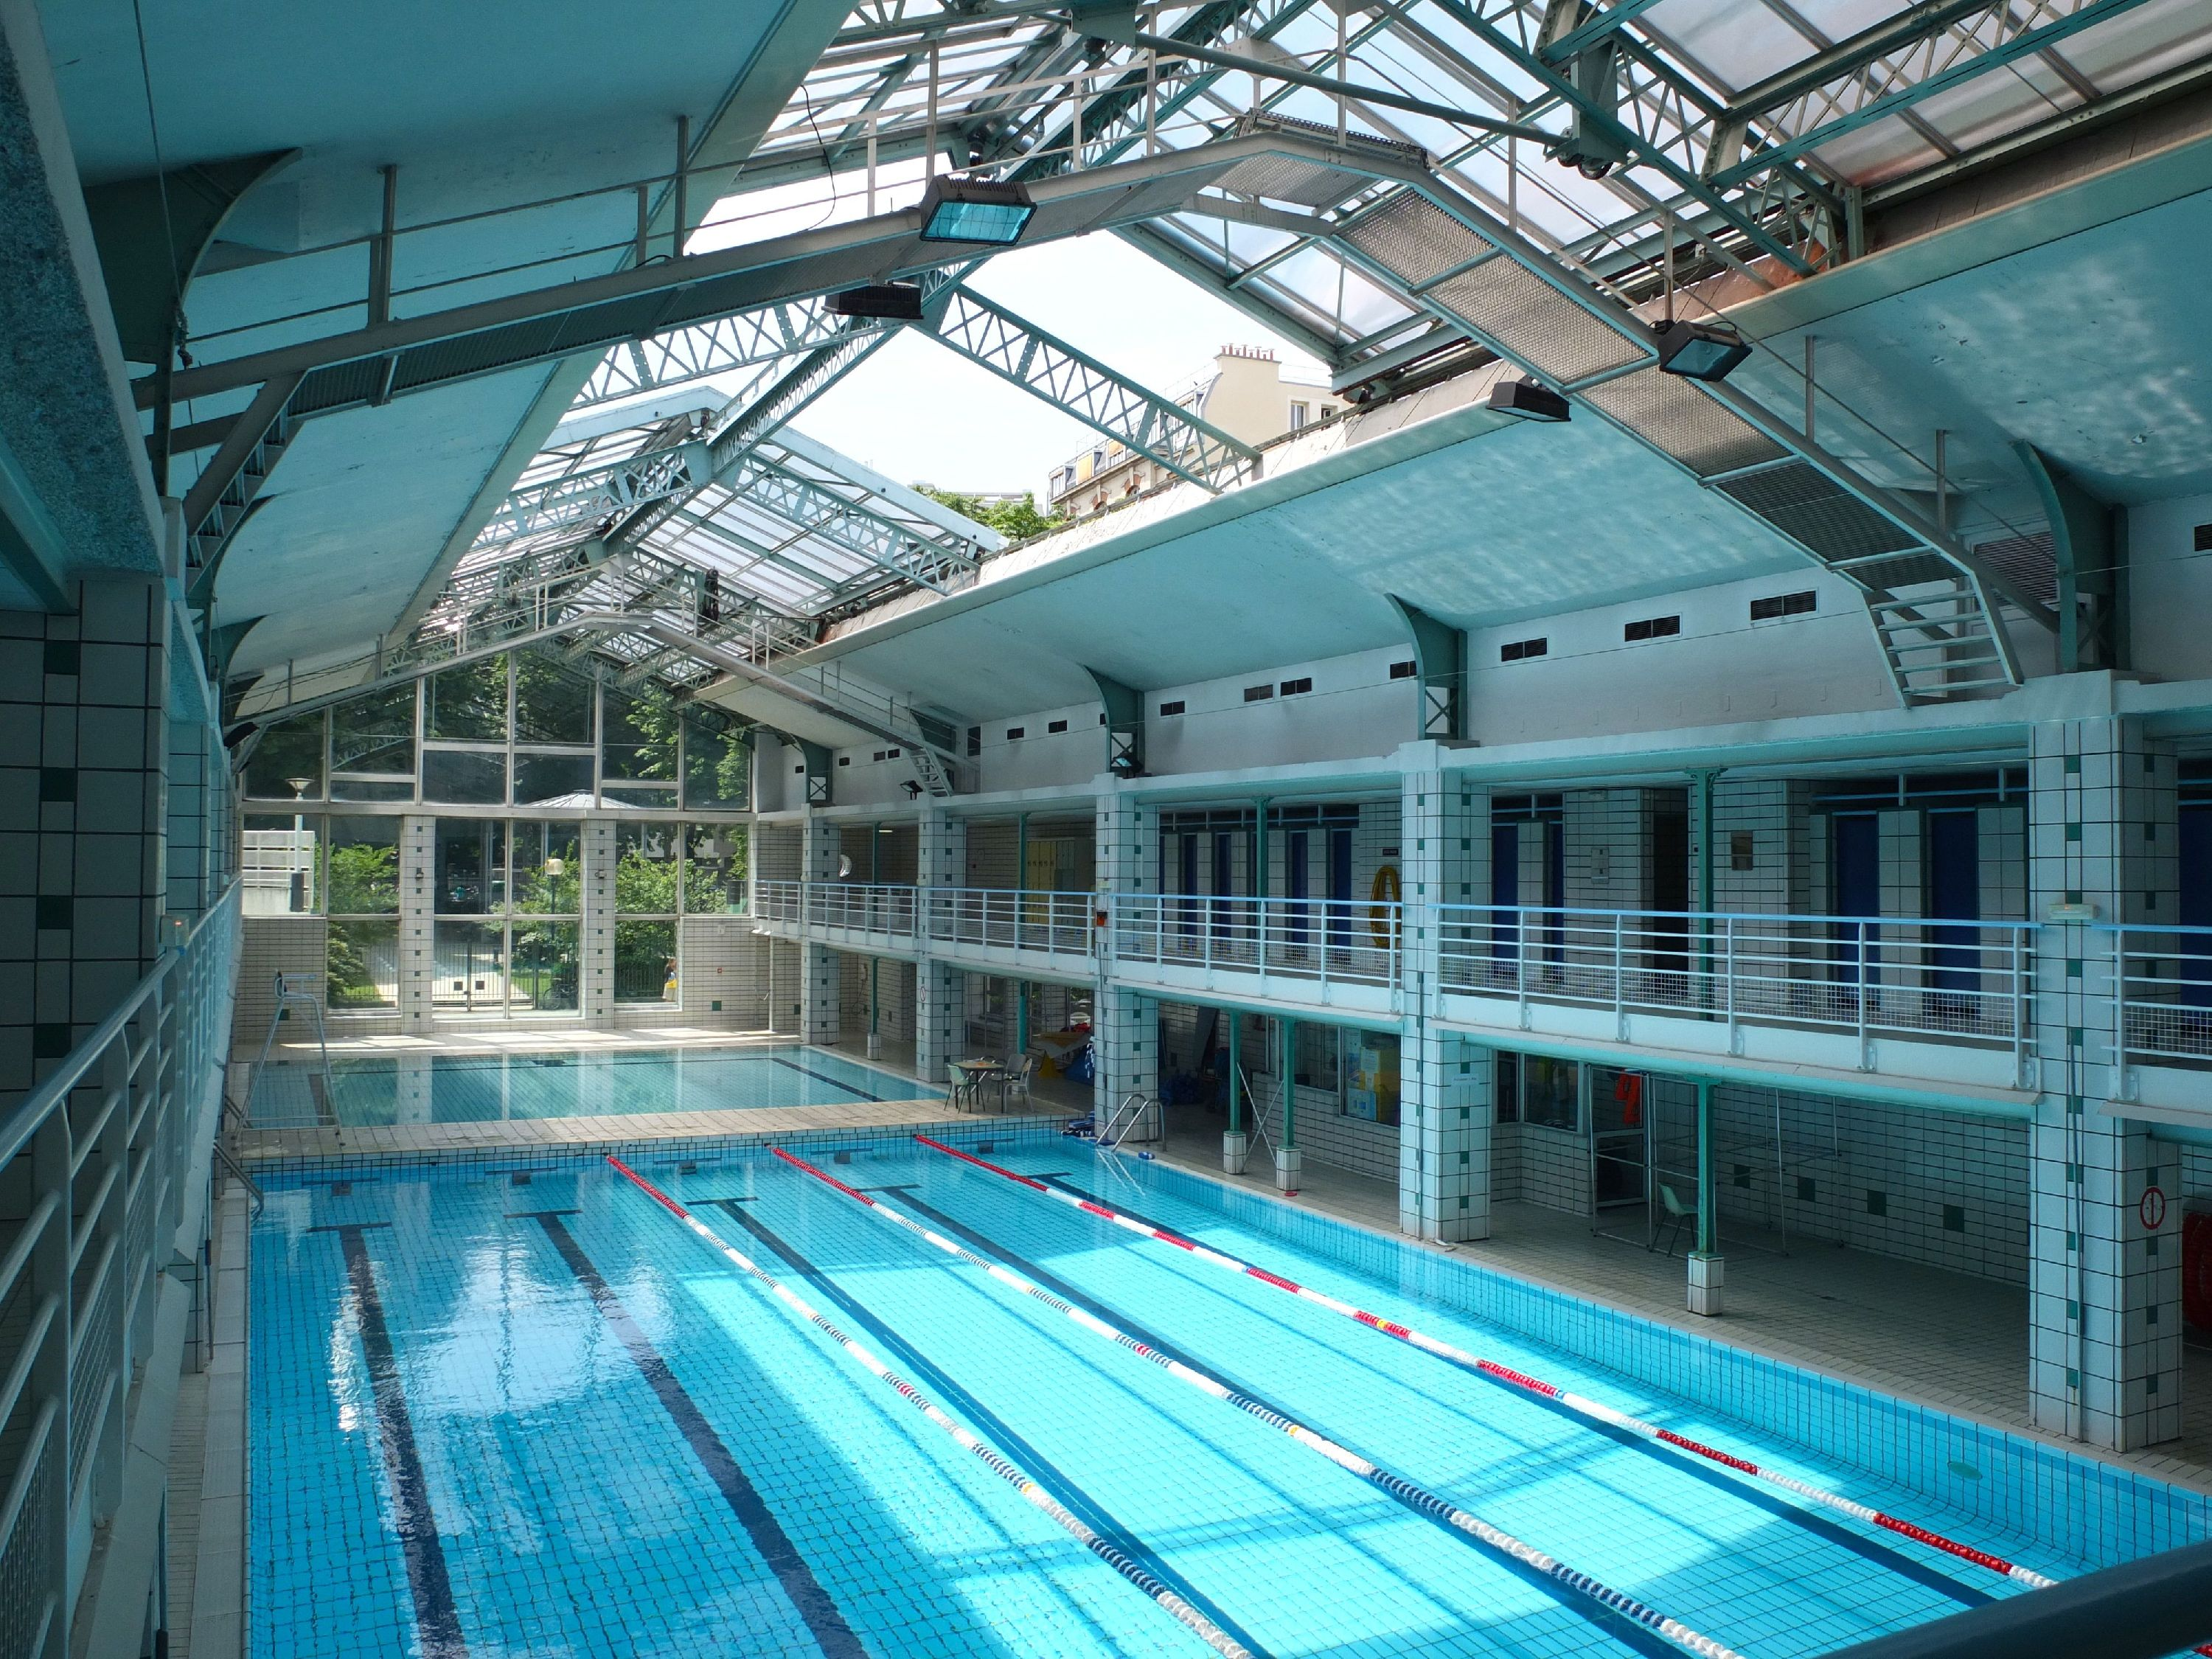 Piscine h bert sport la chapelle paris for Piscine 75018